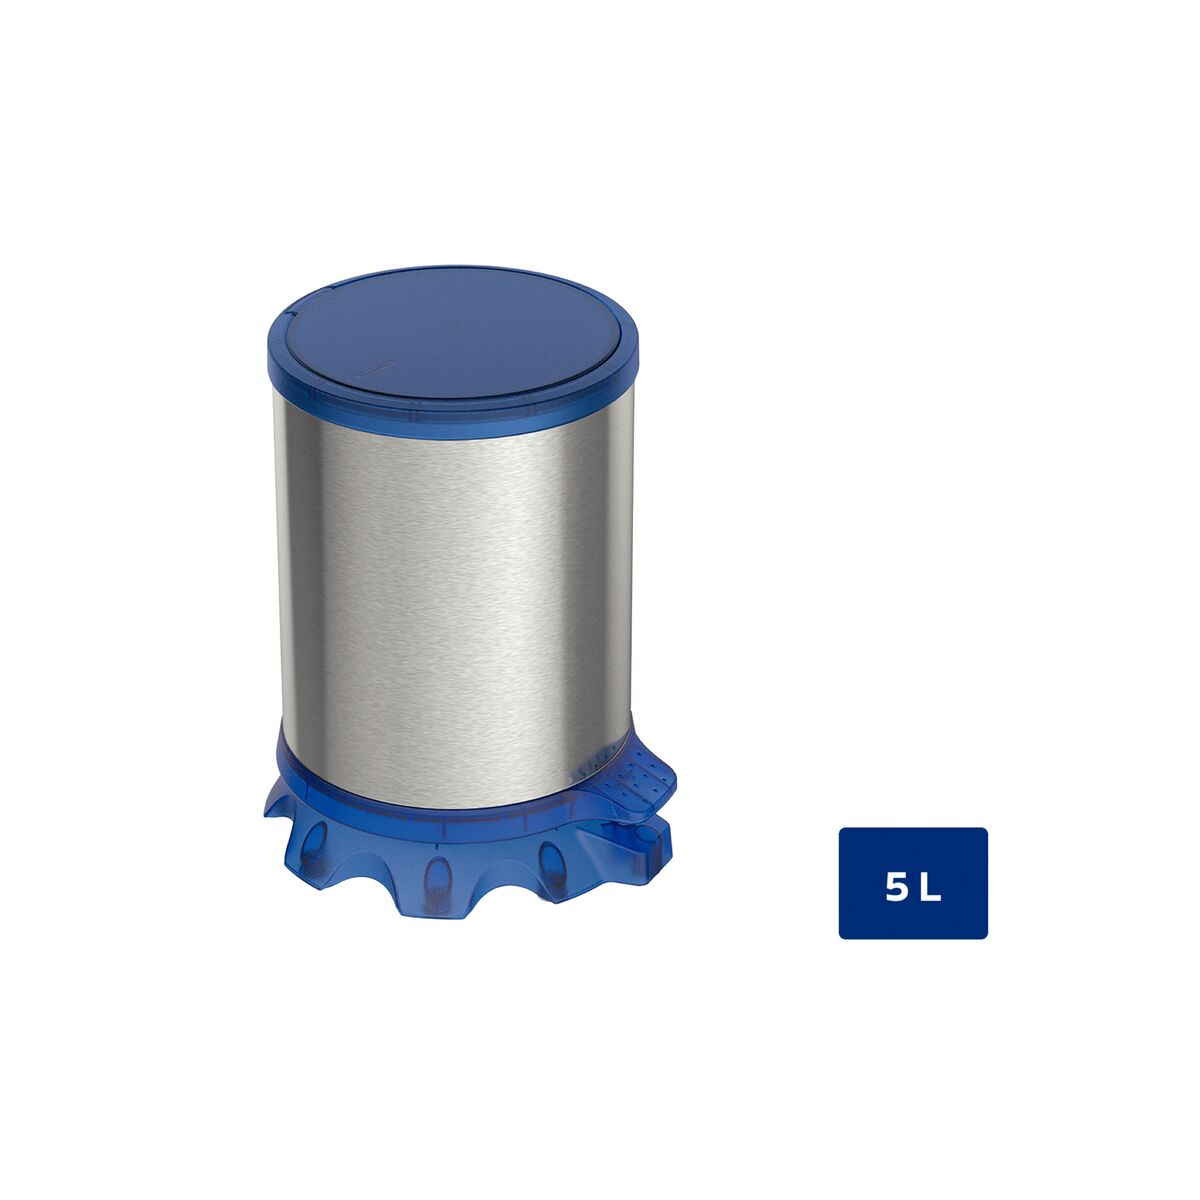 Tramontina Sofie stainless steel pedal trash can with Scotch Brite finish and transparent blue plastic detailing, 5 L